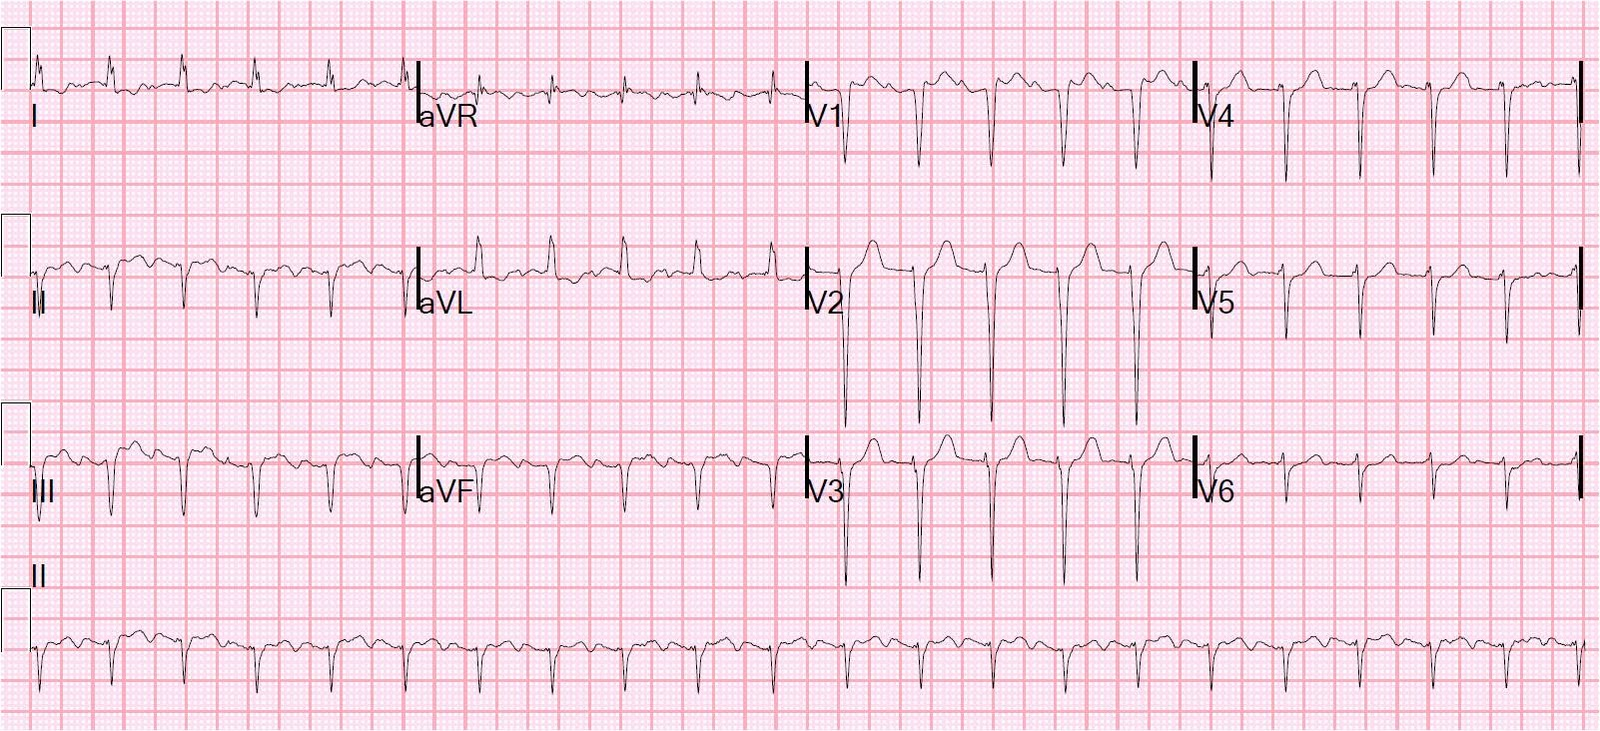 Dr Smith's Ecg Blog Tachycardia With Pericardial Effusion. Alabama Professional Engineer. Chestnut Credit Counseling Floor Cleaner Msds. Ebay Global Shipping Program. Acs Cancer Facts And Figures 2013. I Own My Home And Need A Loan. Internet And Cable Provider Greg Barton Cpa. Business Degree Options Mark Zuckerberg House. Wage Garnishment Worksheet Nose Job New York